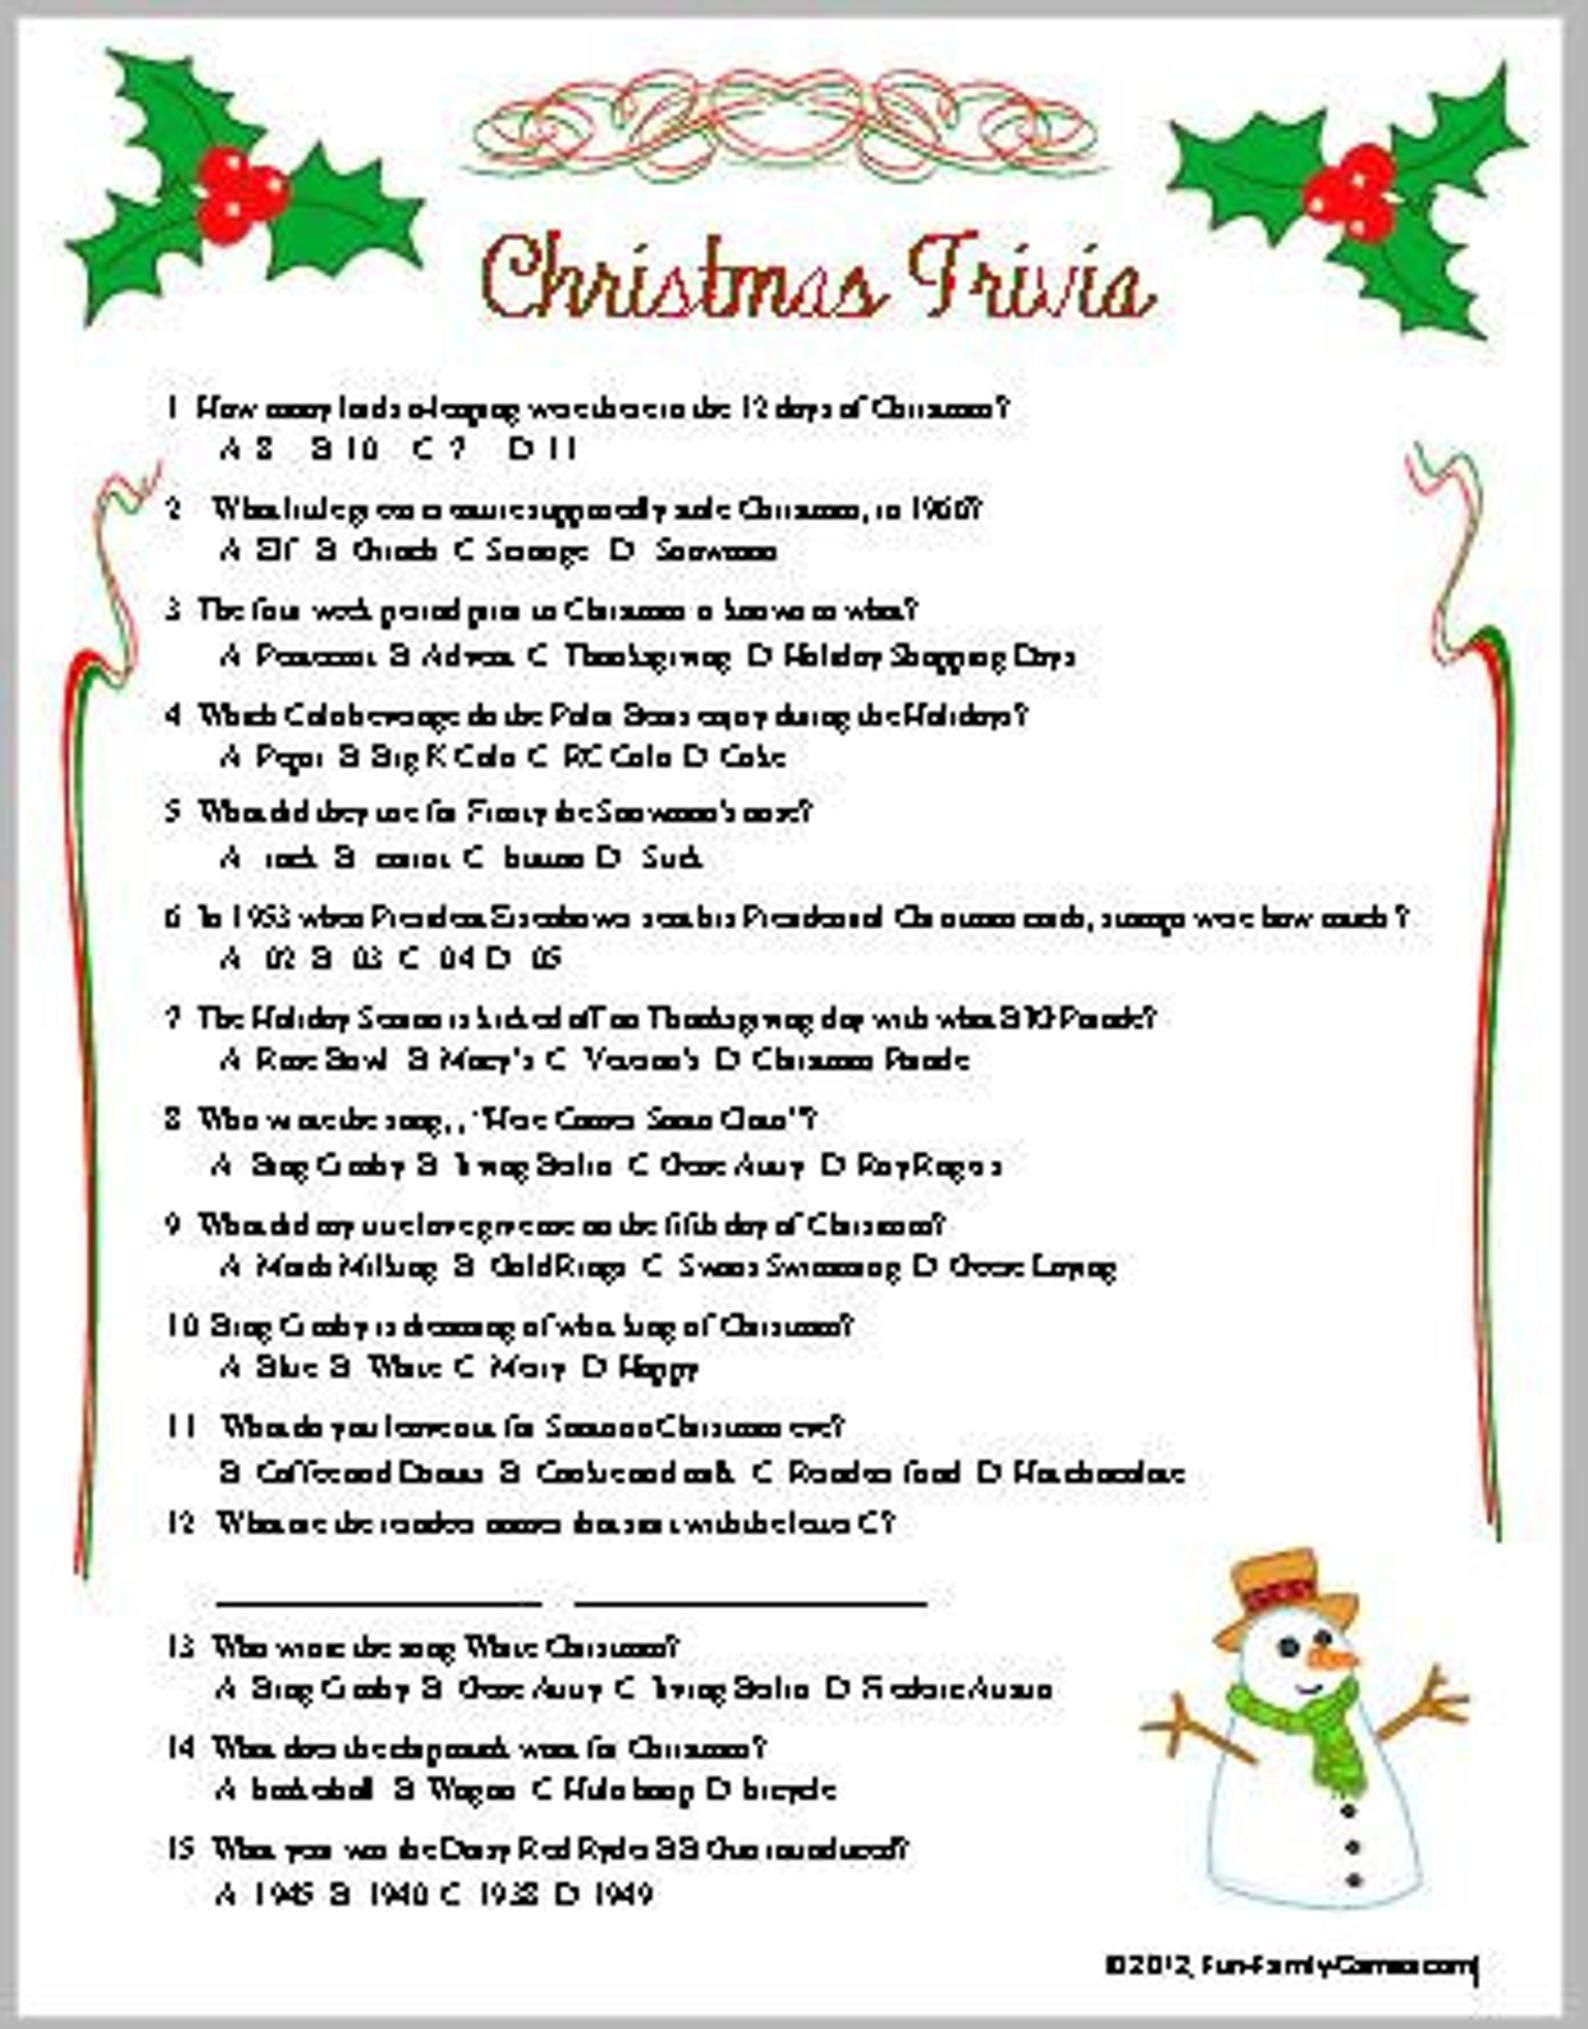 Christmas Trivia Fun for the entire family new games added